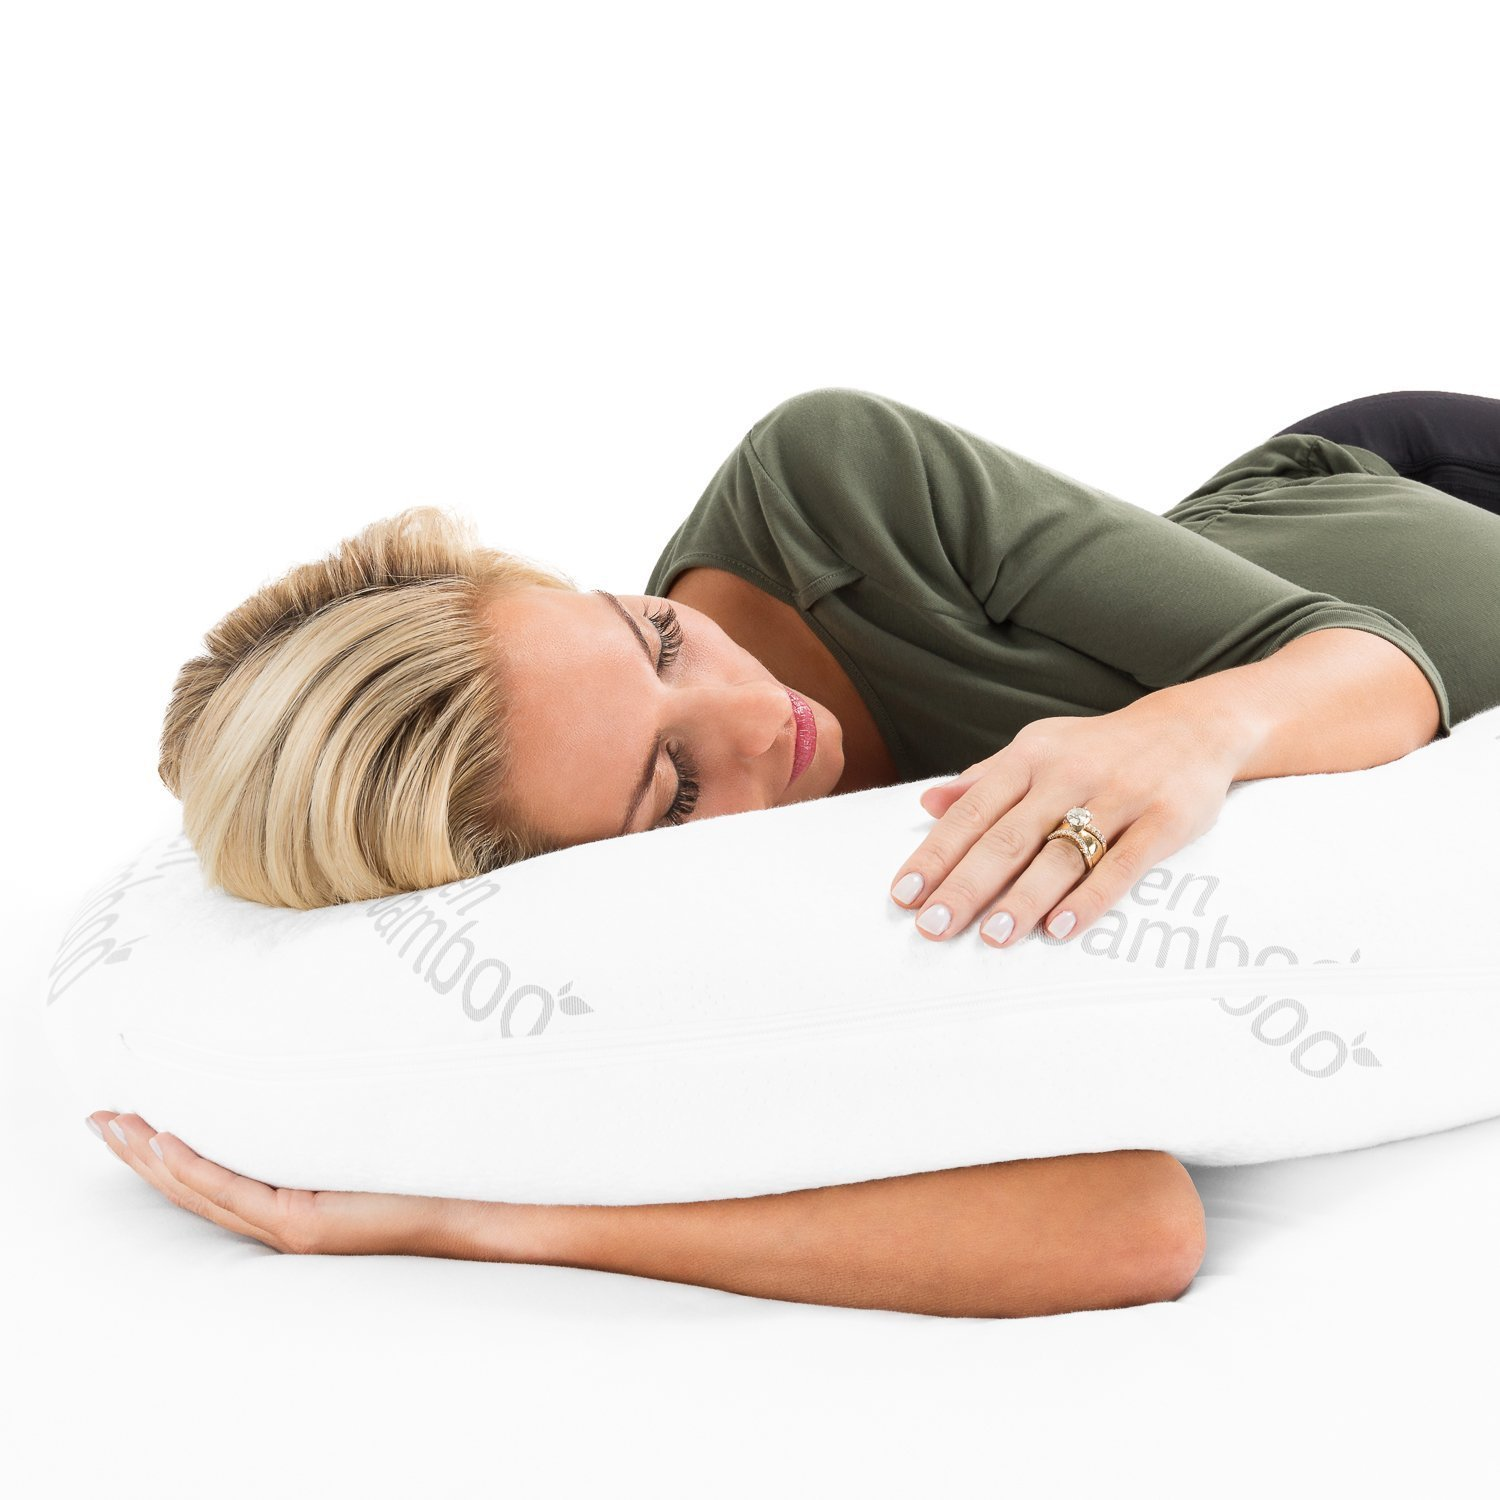 Zen Bamboo 1800 Series Full Body Pregnancy Pillow - Maternity & Nursing Support Cushion & Body Pillow with Ultra-Soft, Washable Rayon from Bamboo Blend Cover … by Zen Bamboo (Image #4)